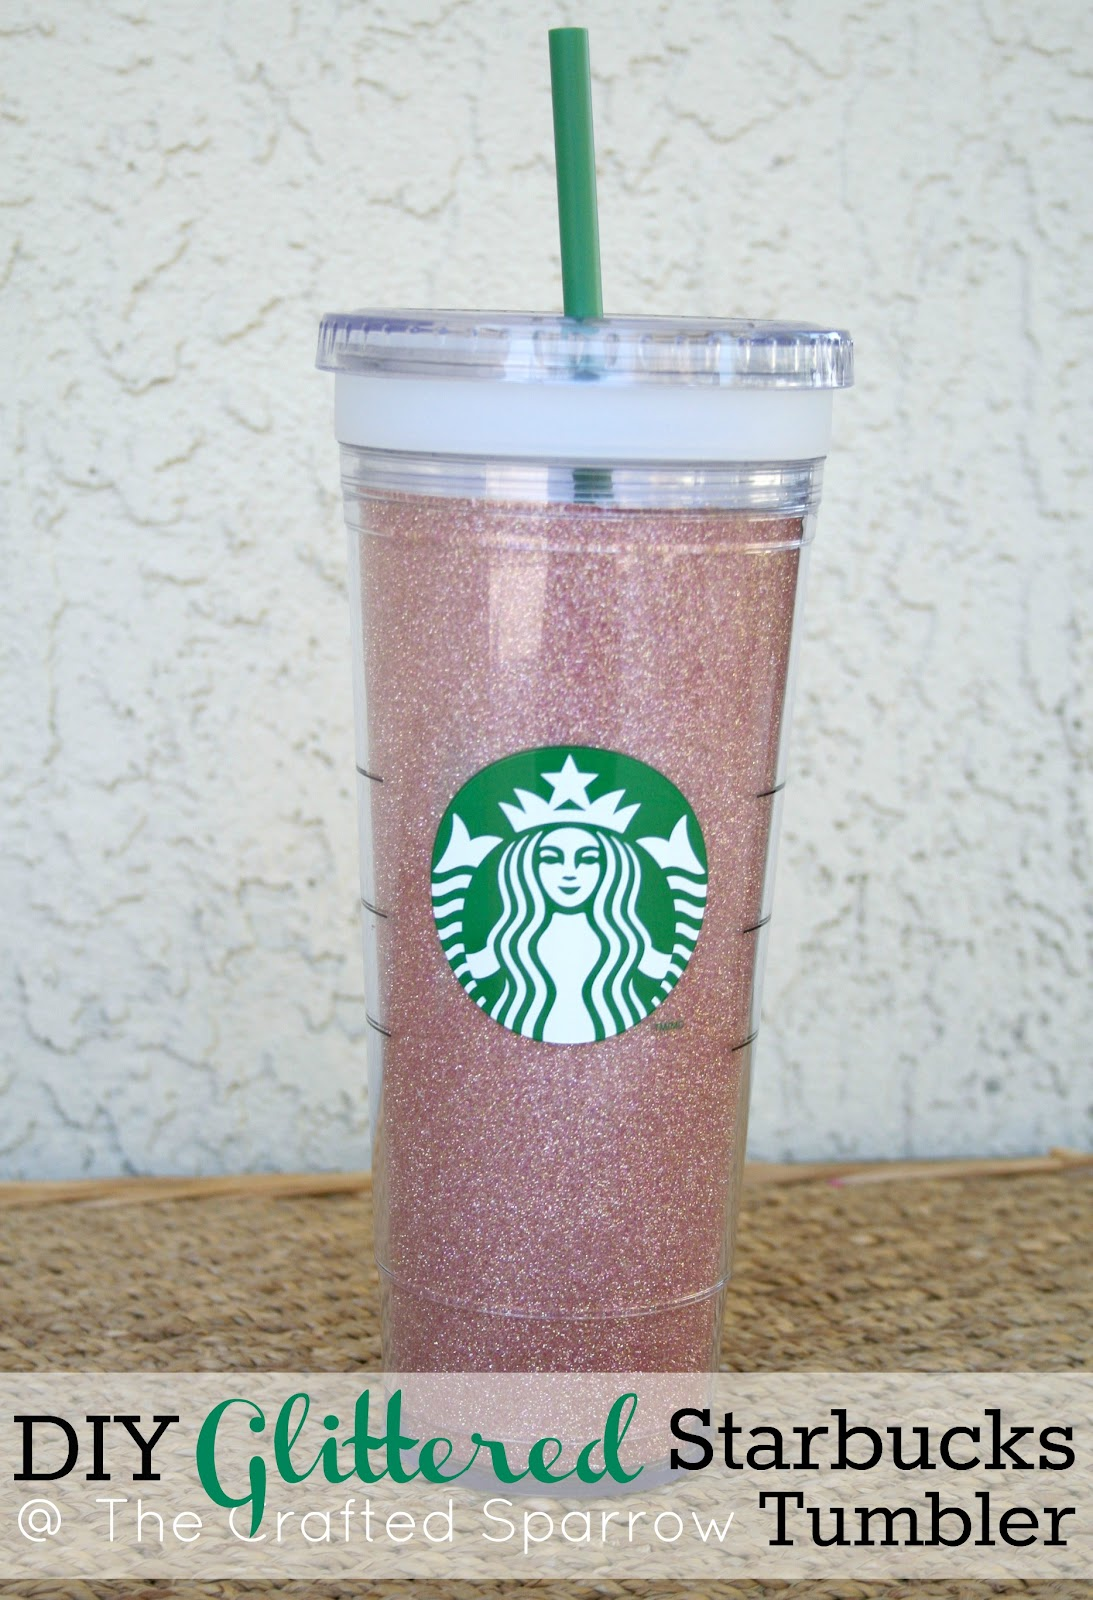 DIY Glittered Starbucks Tumbler - The Crafted Sparrow